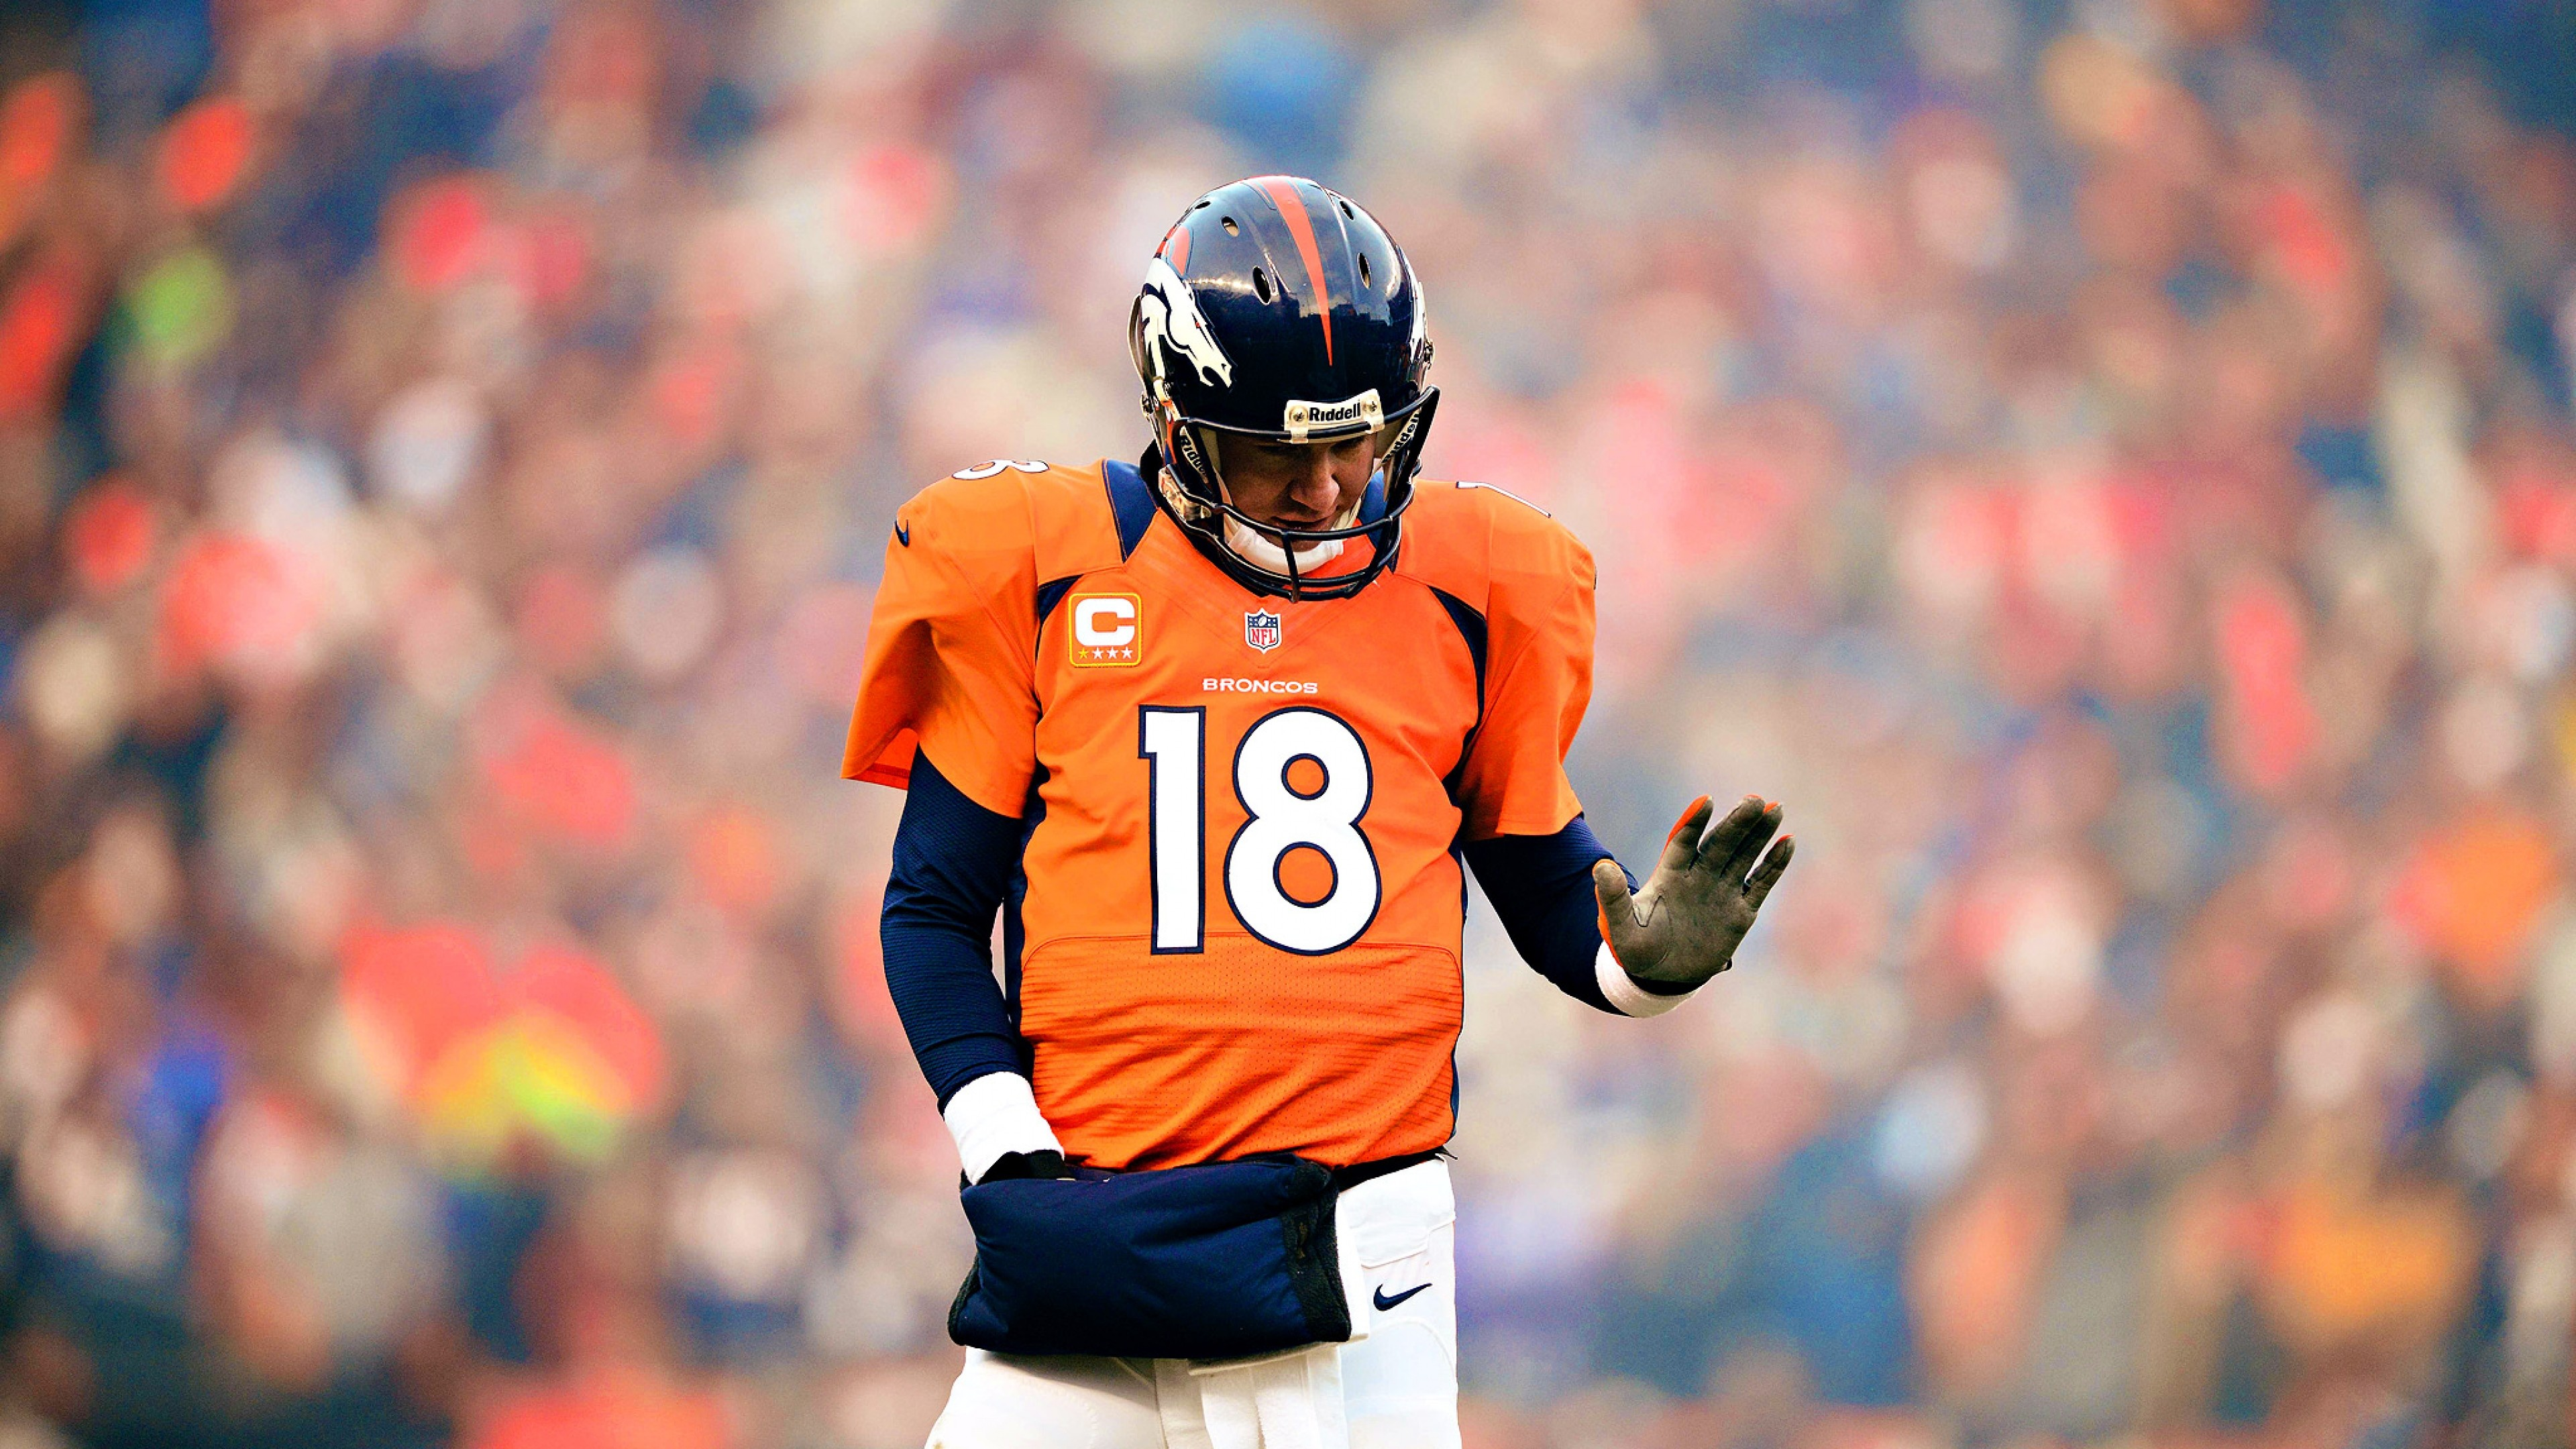 Preview wallpaper peyton manning, denver broncos, form 3840×2160